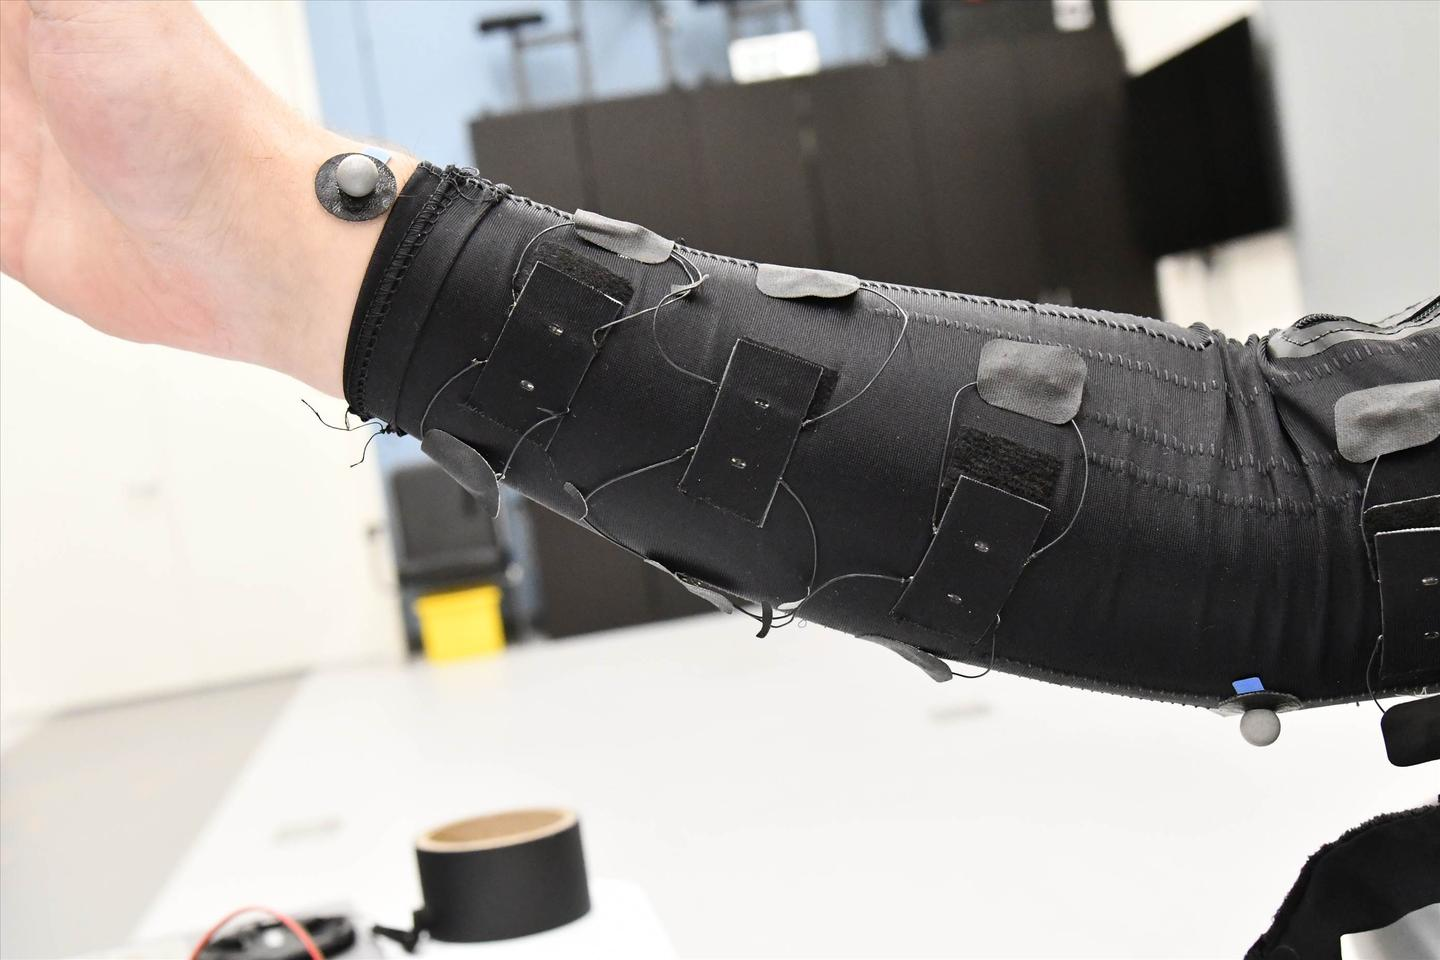 Pictured here incorporated into a sleeve, the sensor could find use in applications such as virtual reality simulations, sportswear, and clinical diagnostics